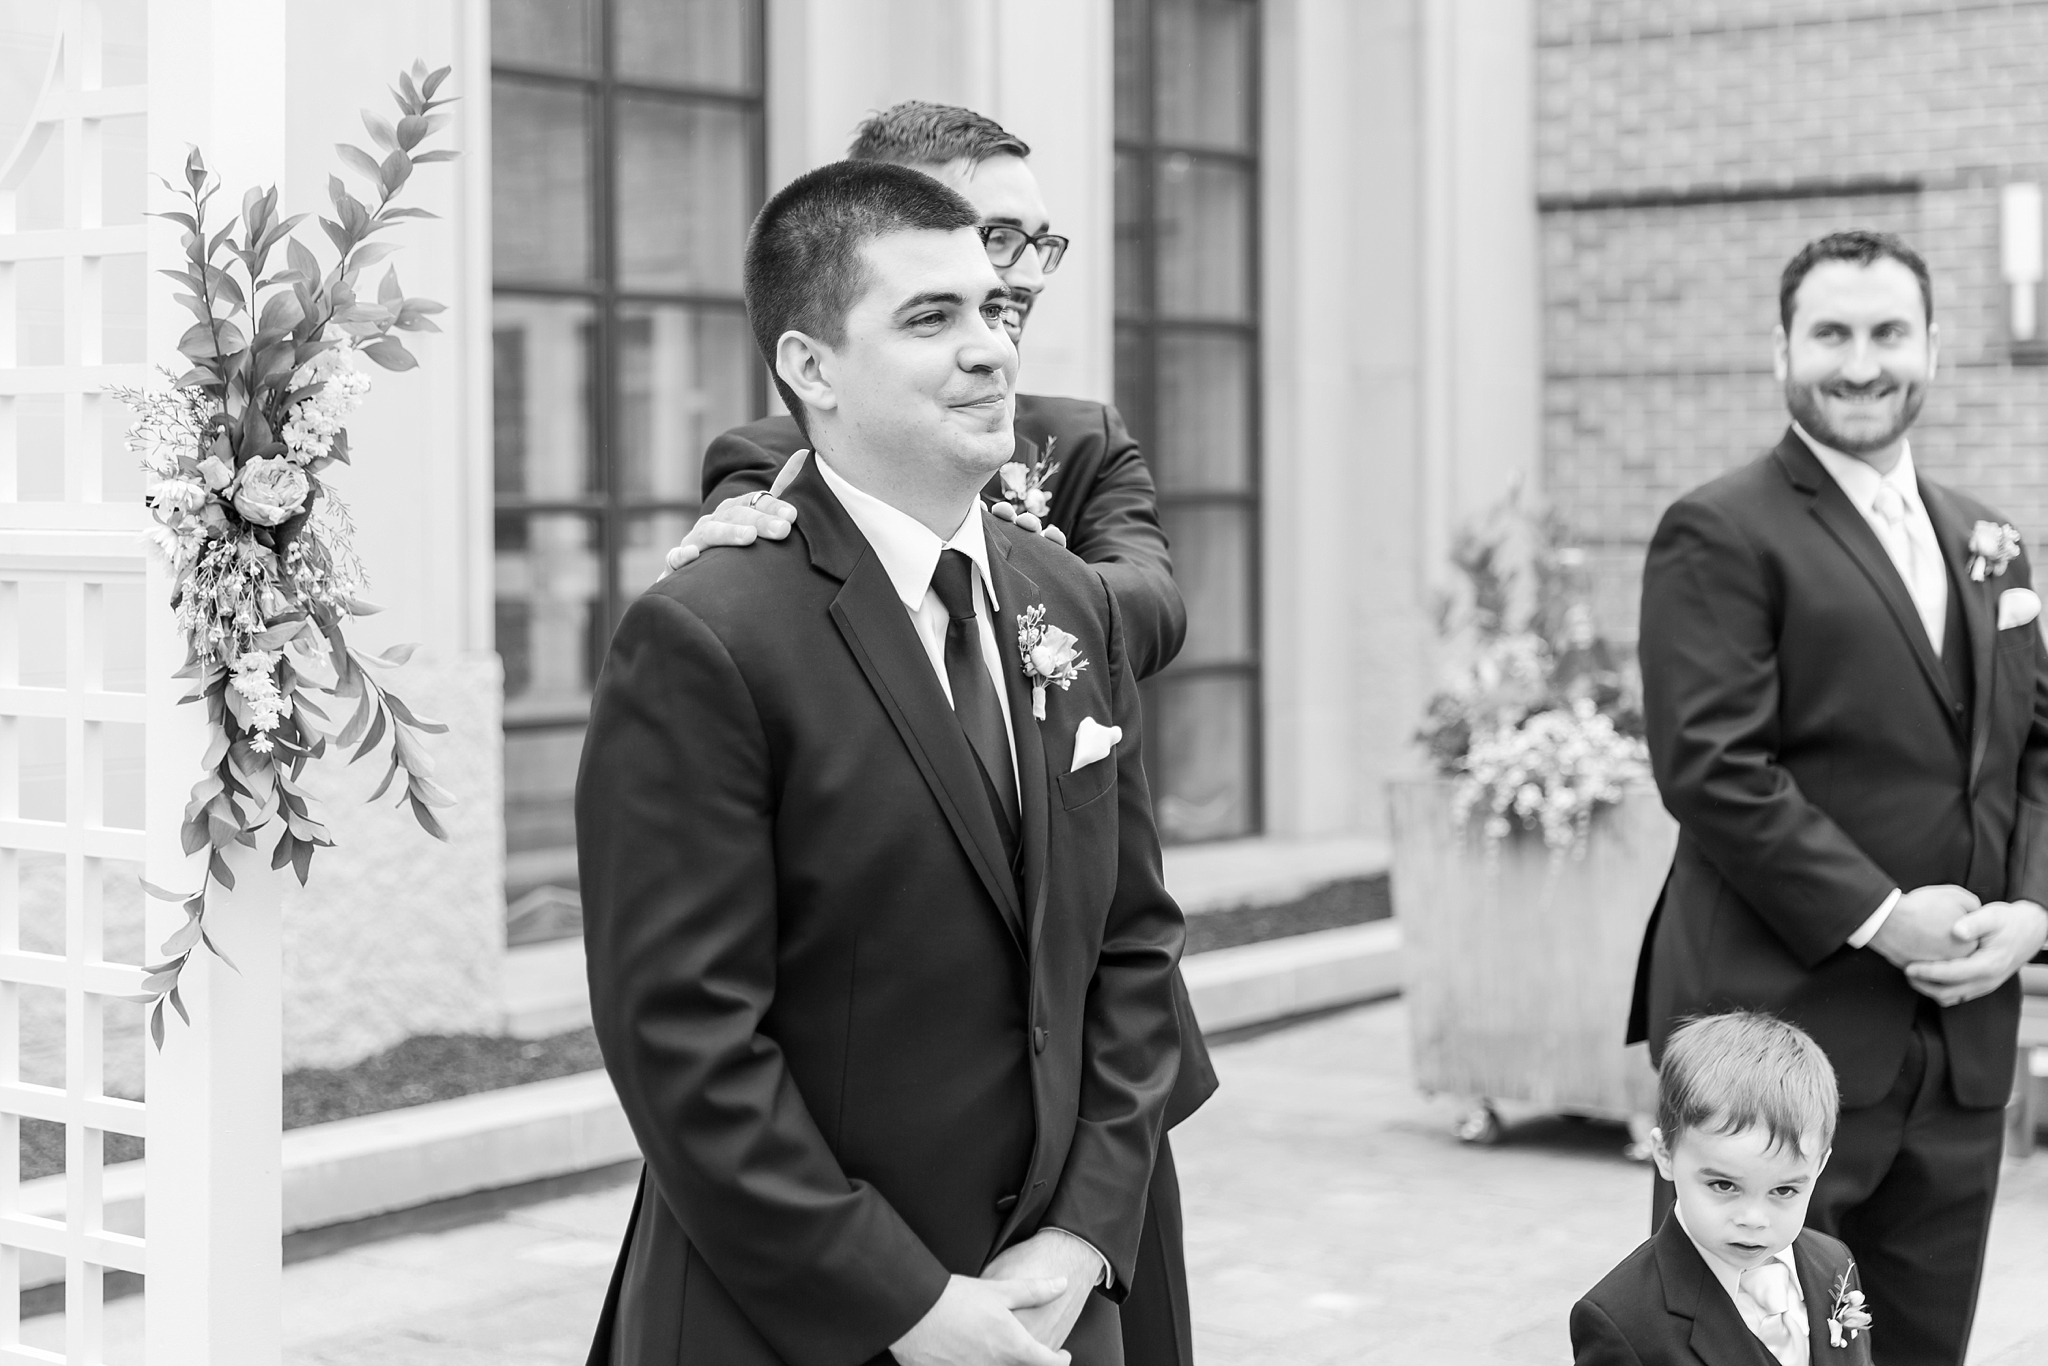 candid-romantic-wedding-photos-at-the-h-hotel-in-midland-michigan-by-courtney-carolyn-photography_0066.jpg